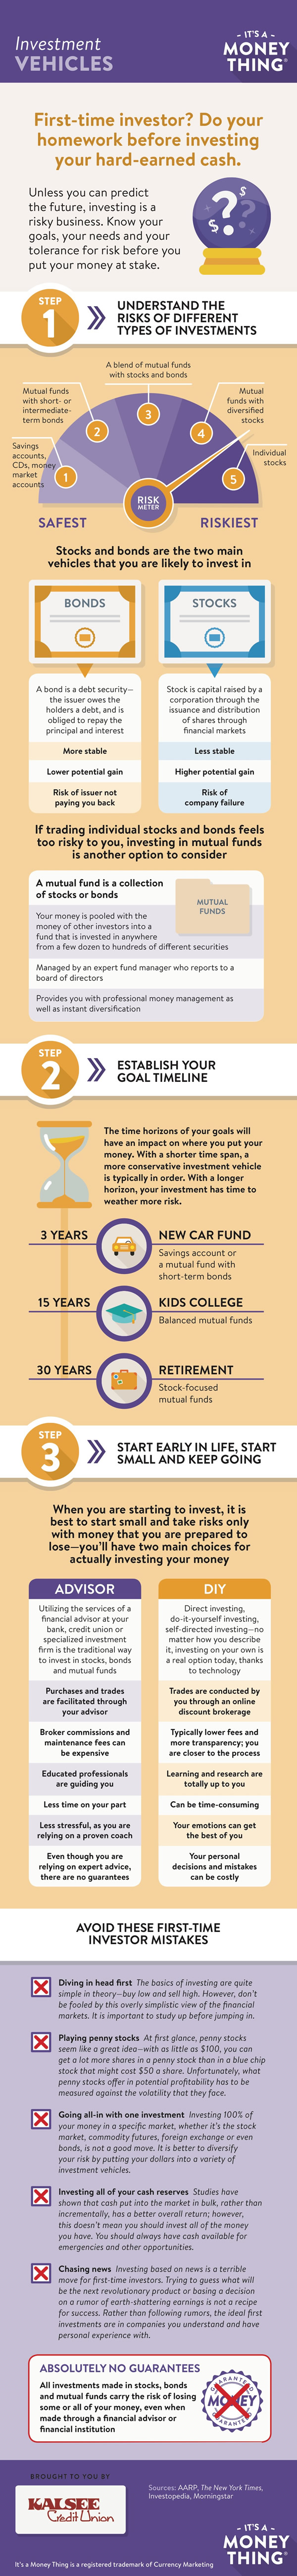 Investment vehicles infographic, click for transcription